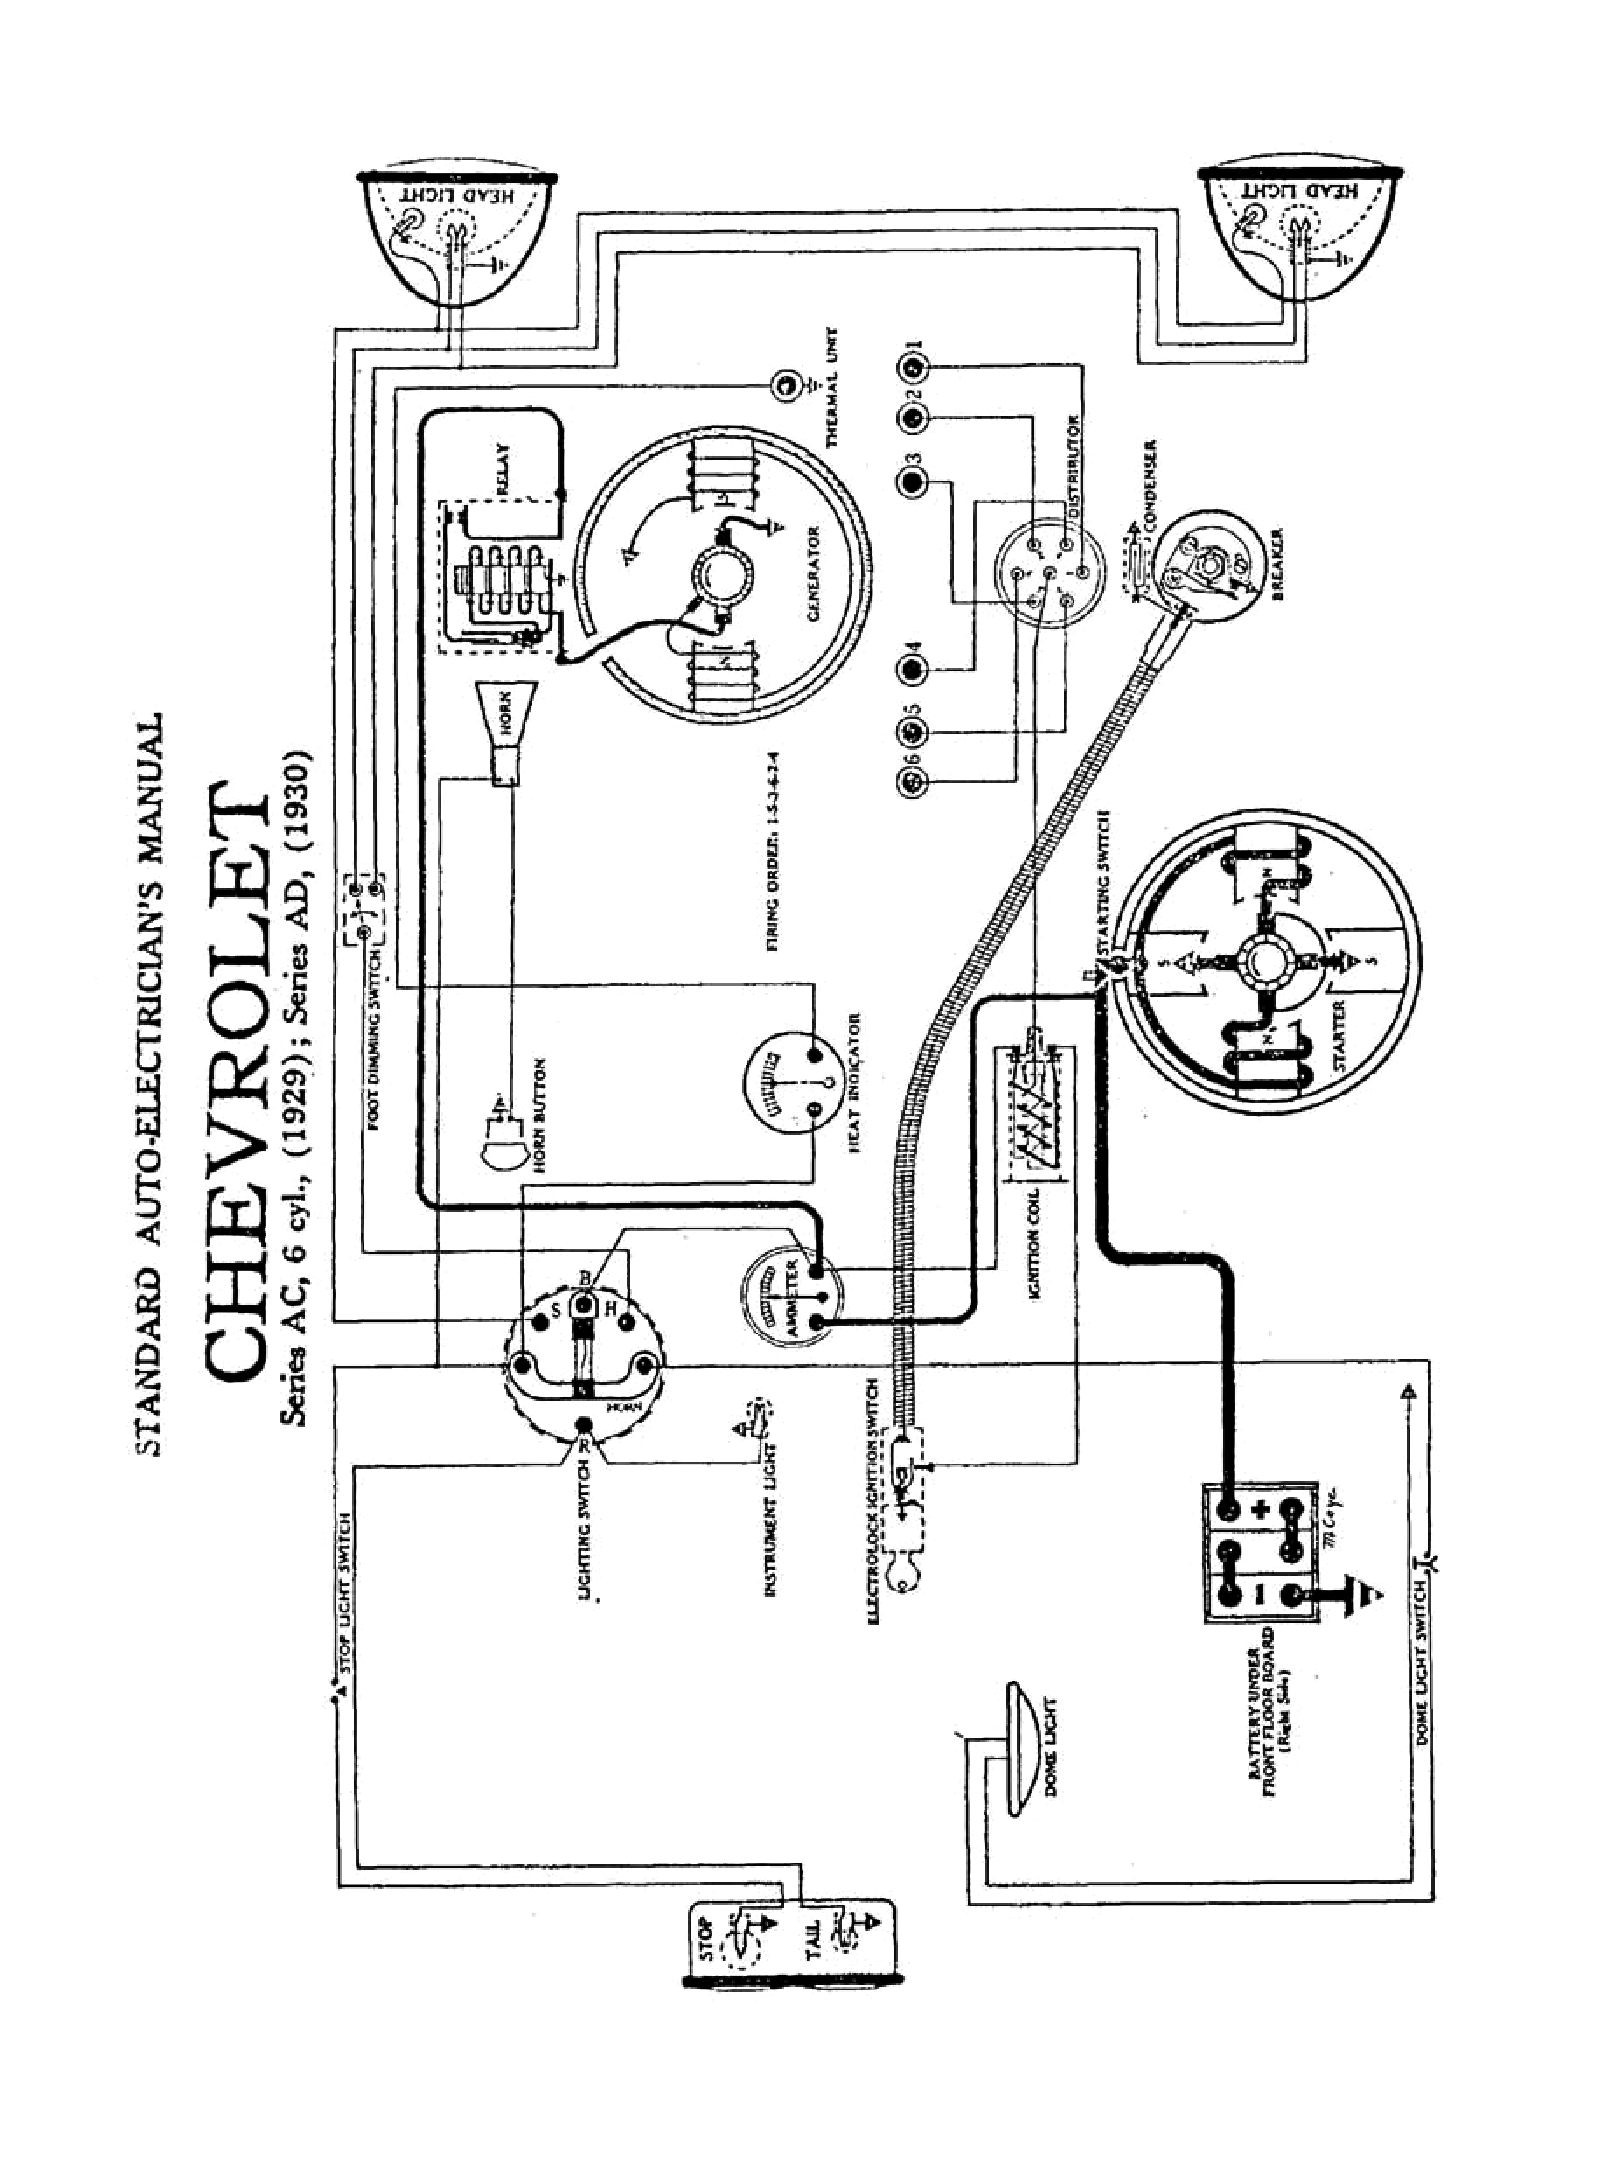 Volvo Etm Wiring Diagram Apktodownload